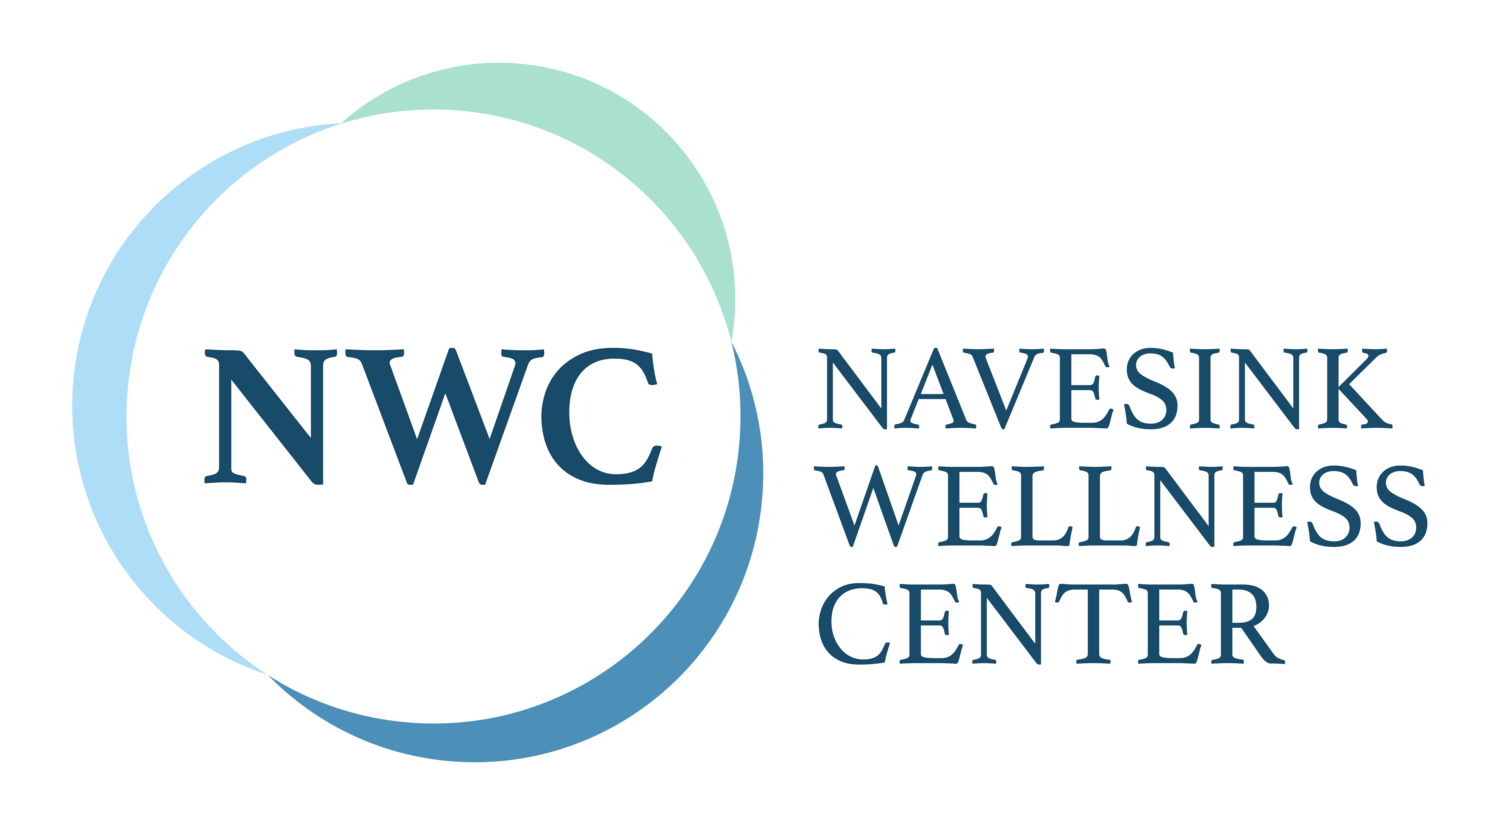 Navesink Wellness Center